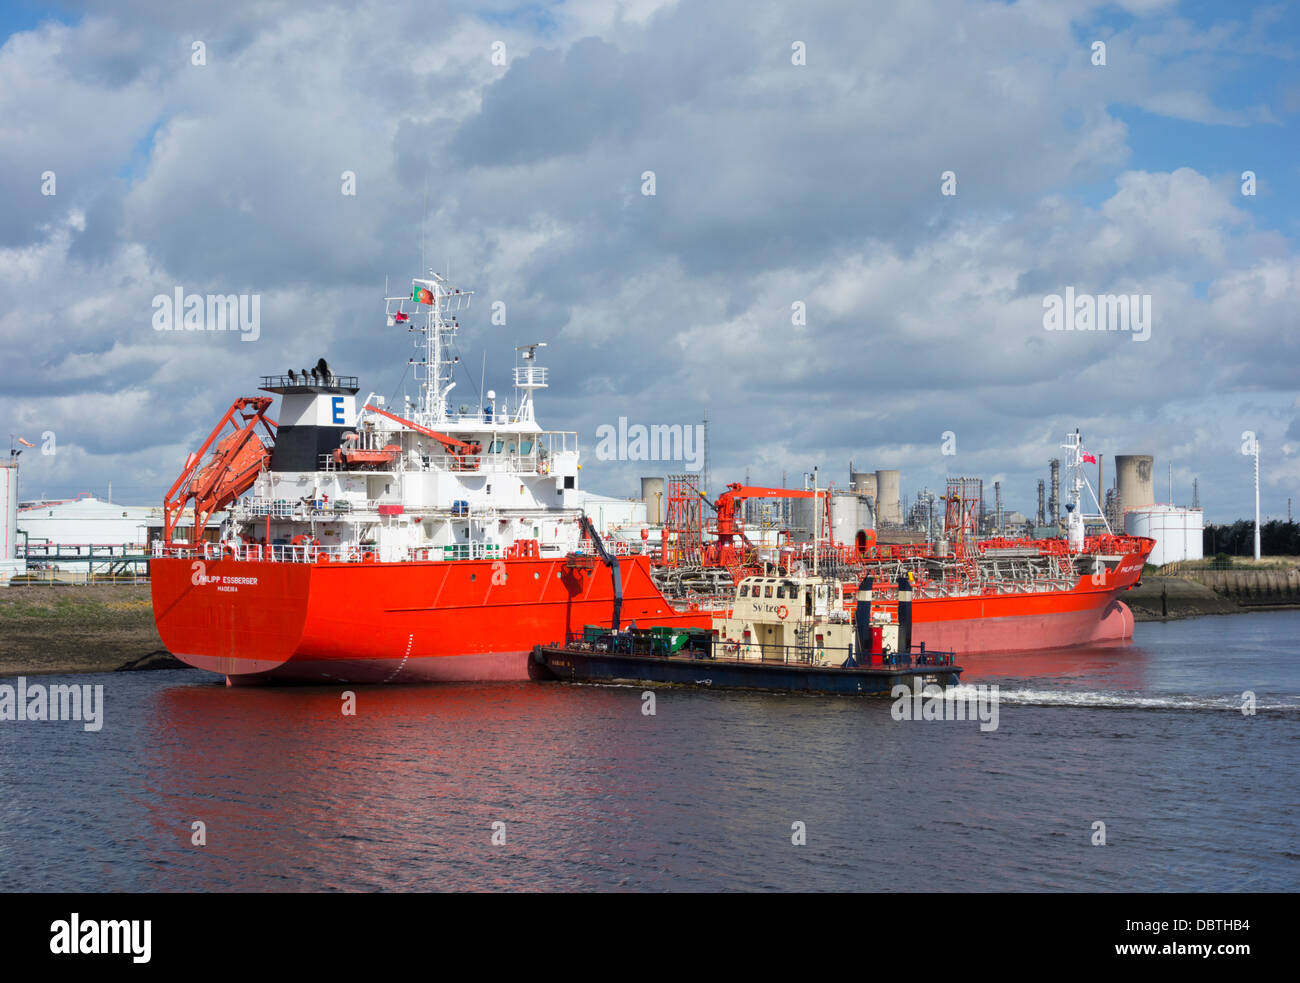 Tanker and resupply boat at Billingham Oil Jetty on the river Tees near Middlesbrough, England, UK - Stock Image